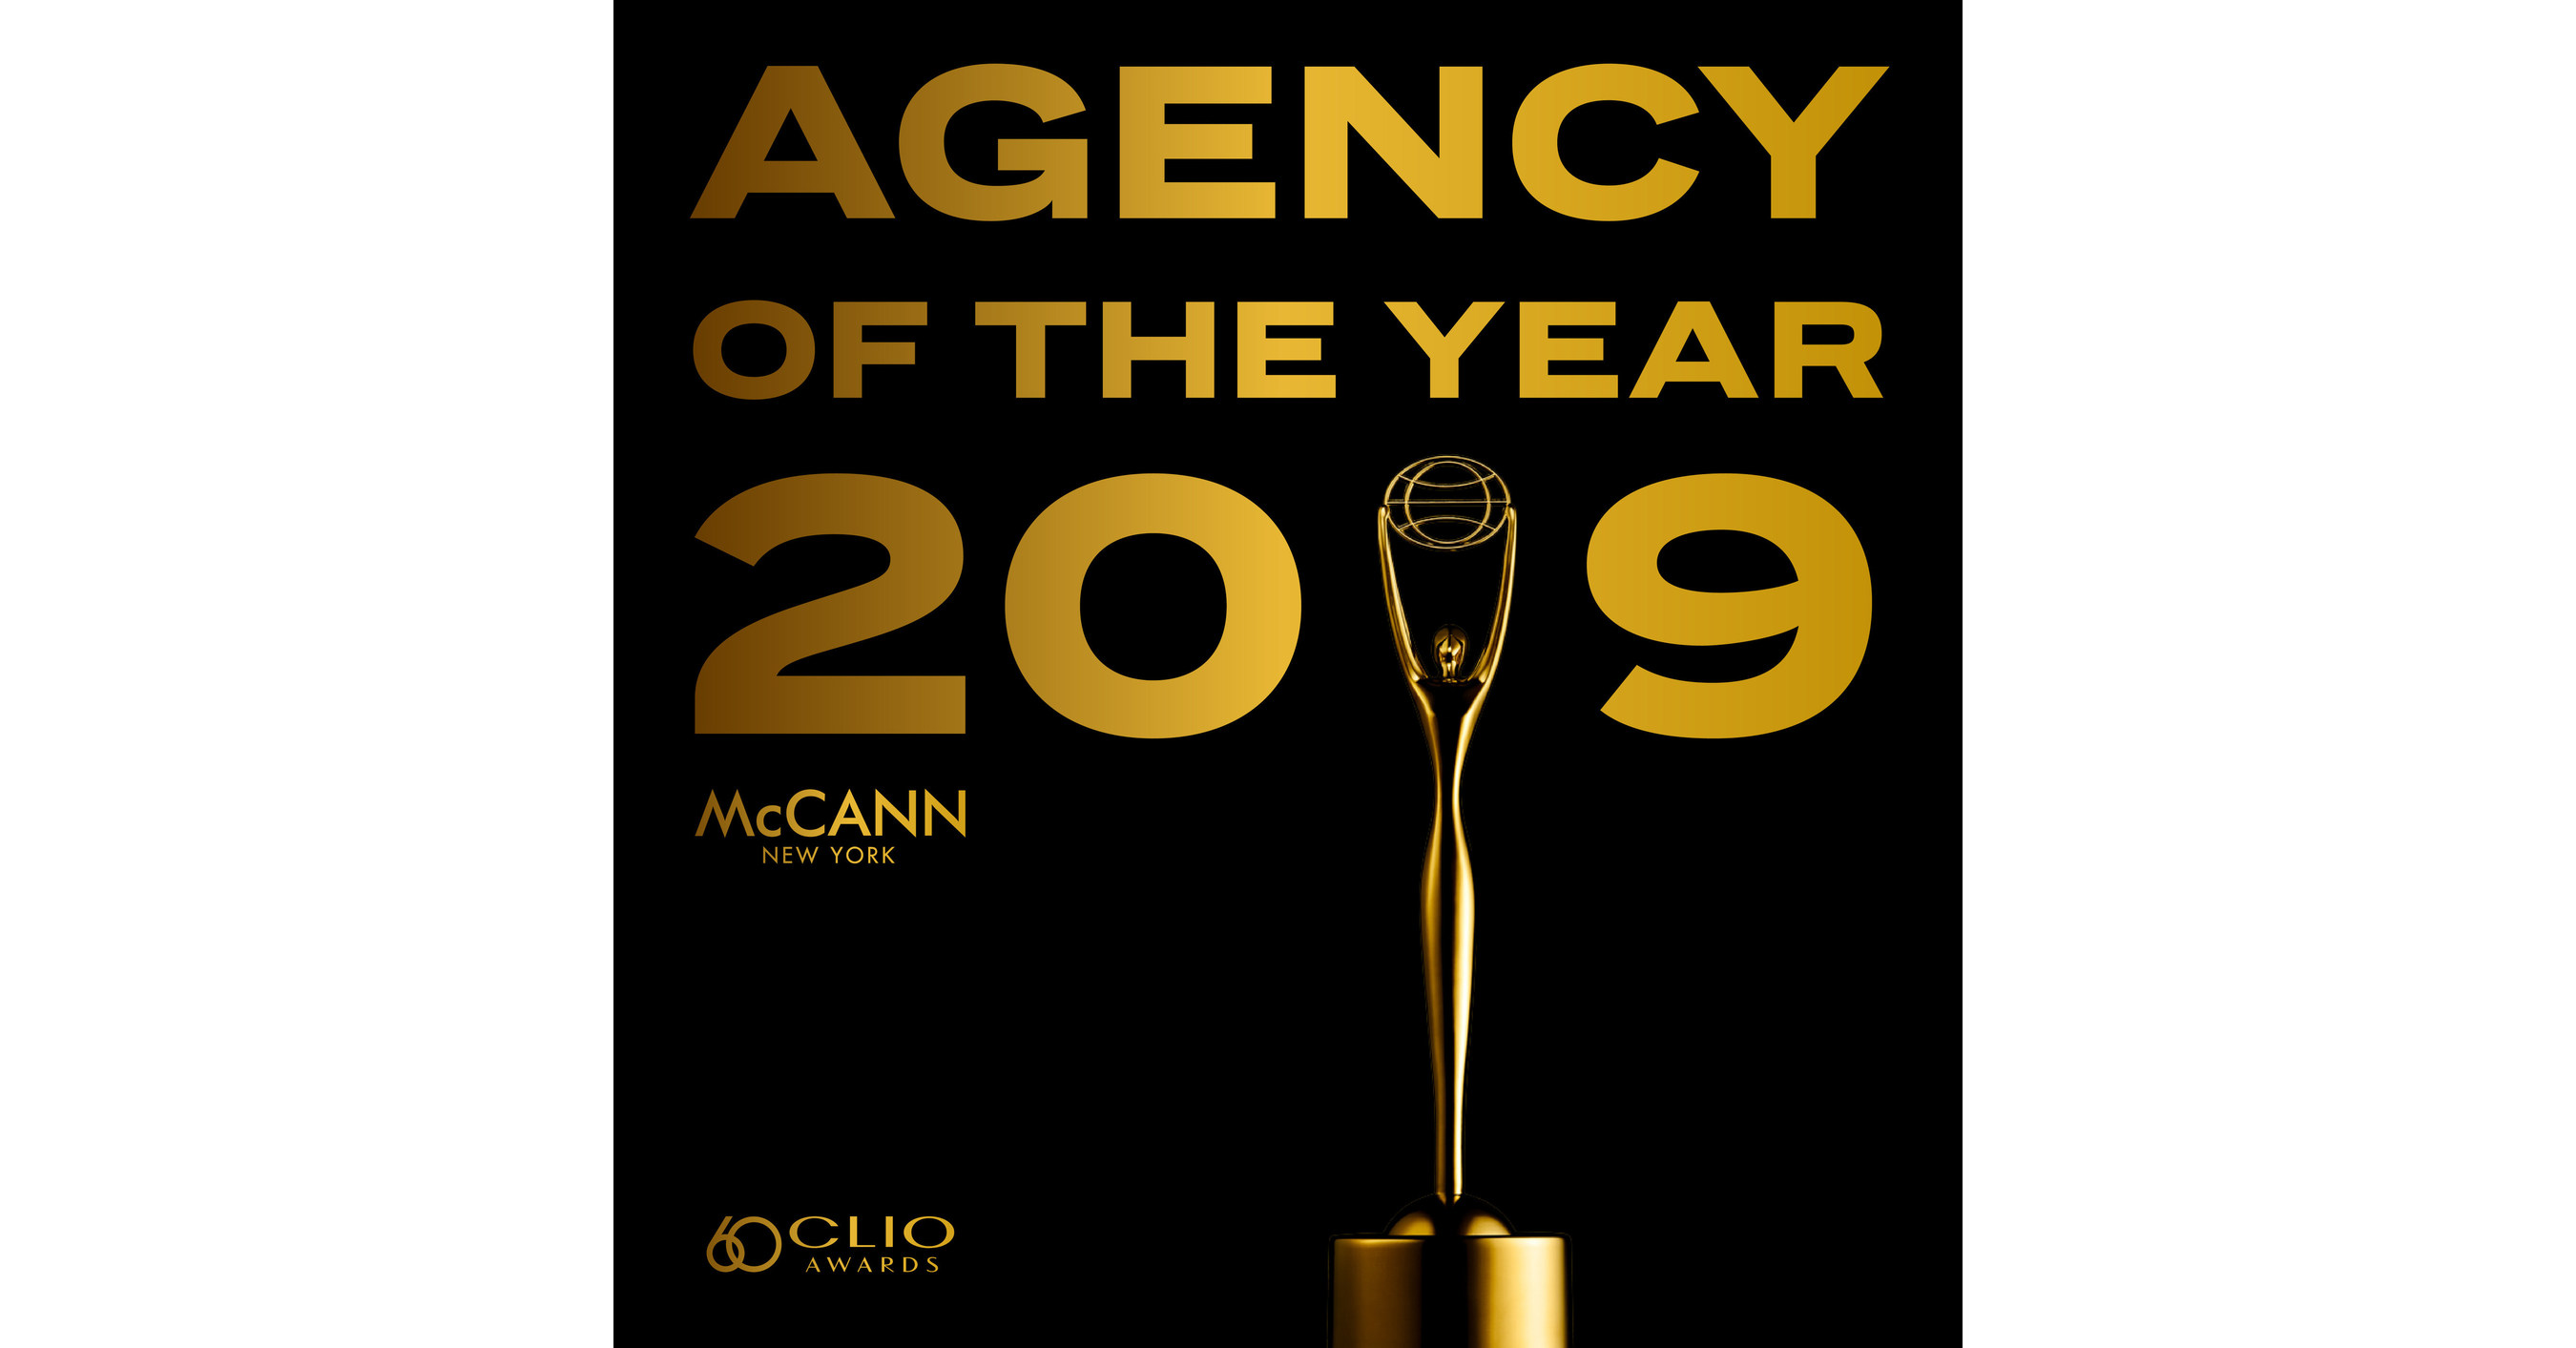 McCann Named Agency of the Year at 2019 Clio Awards